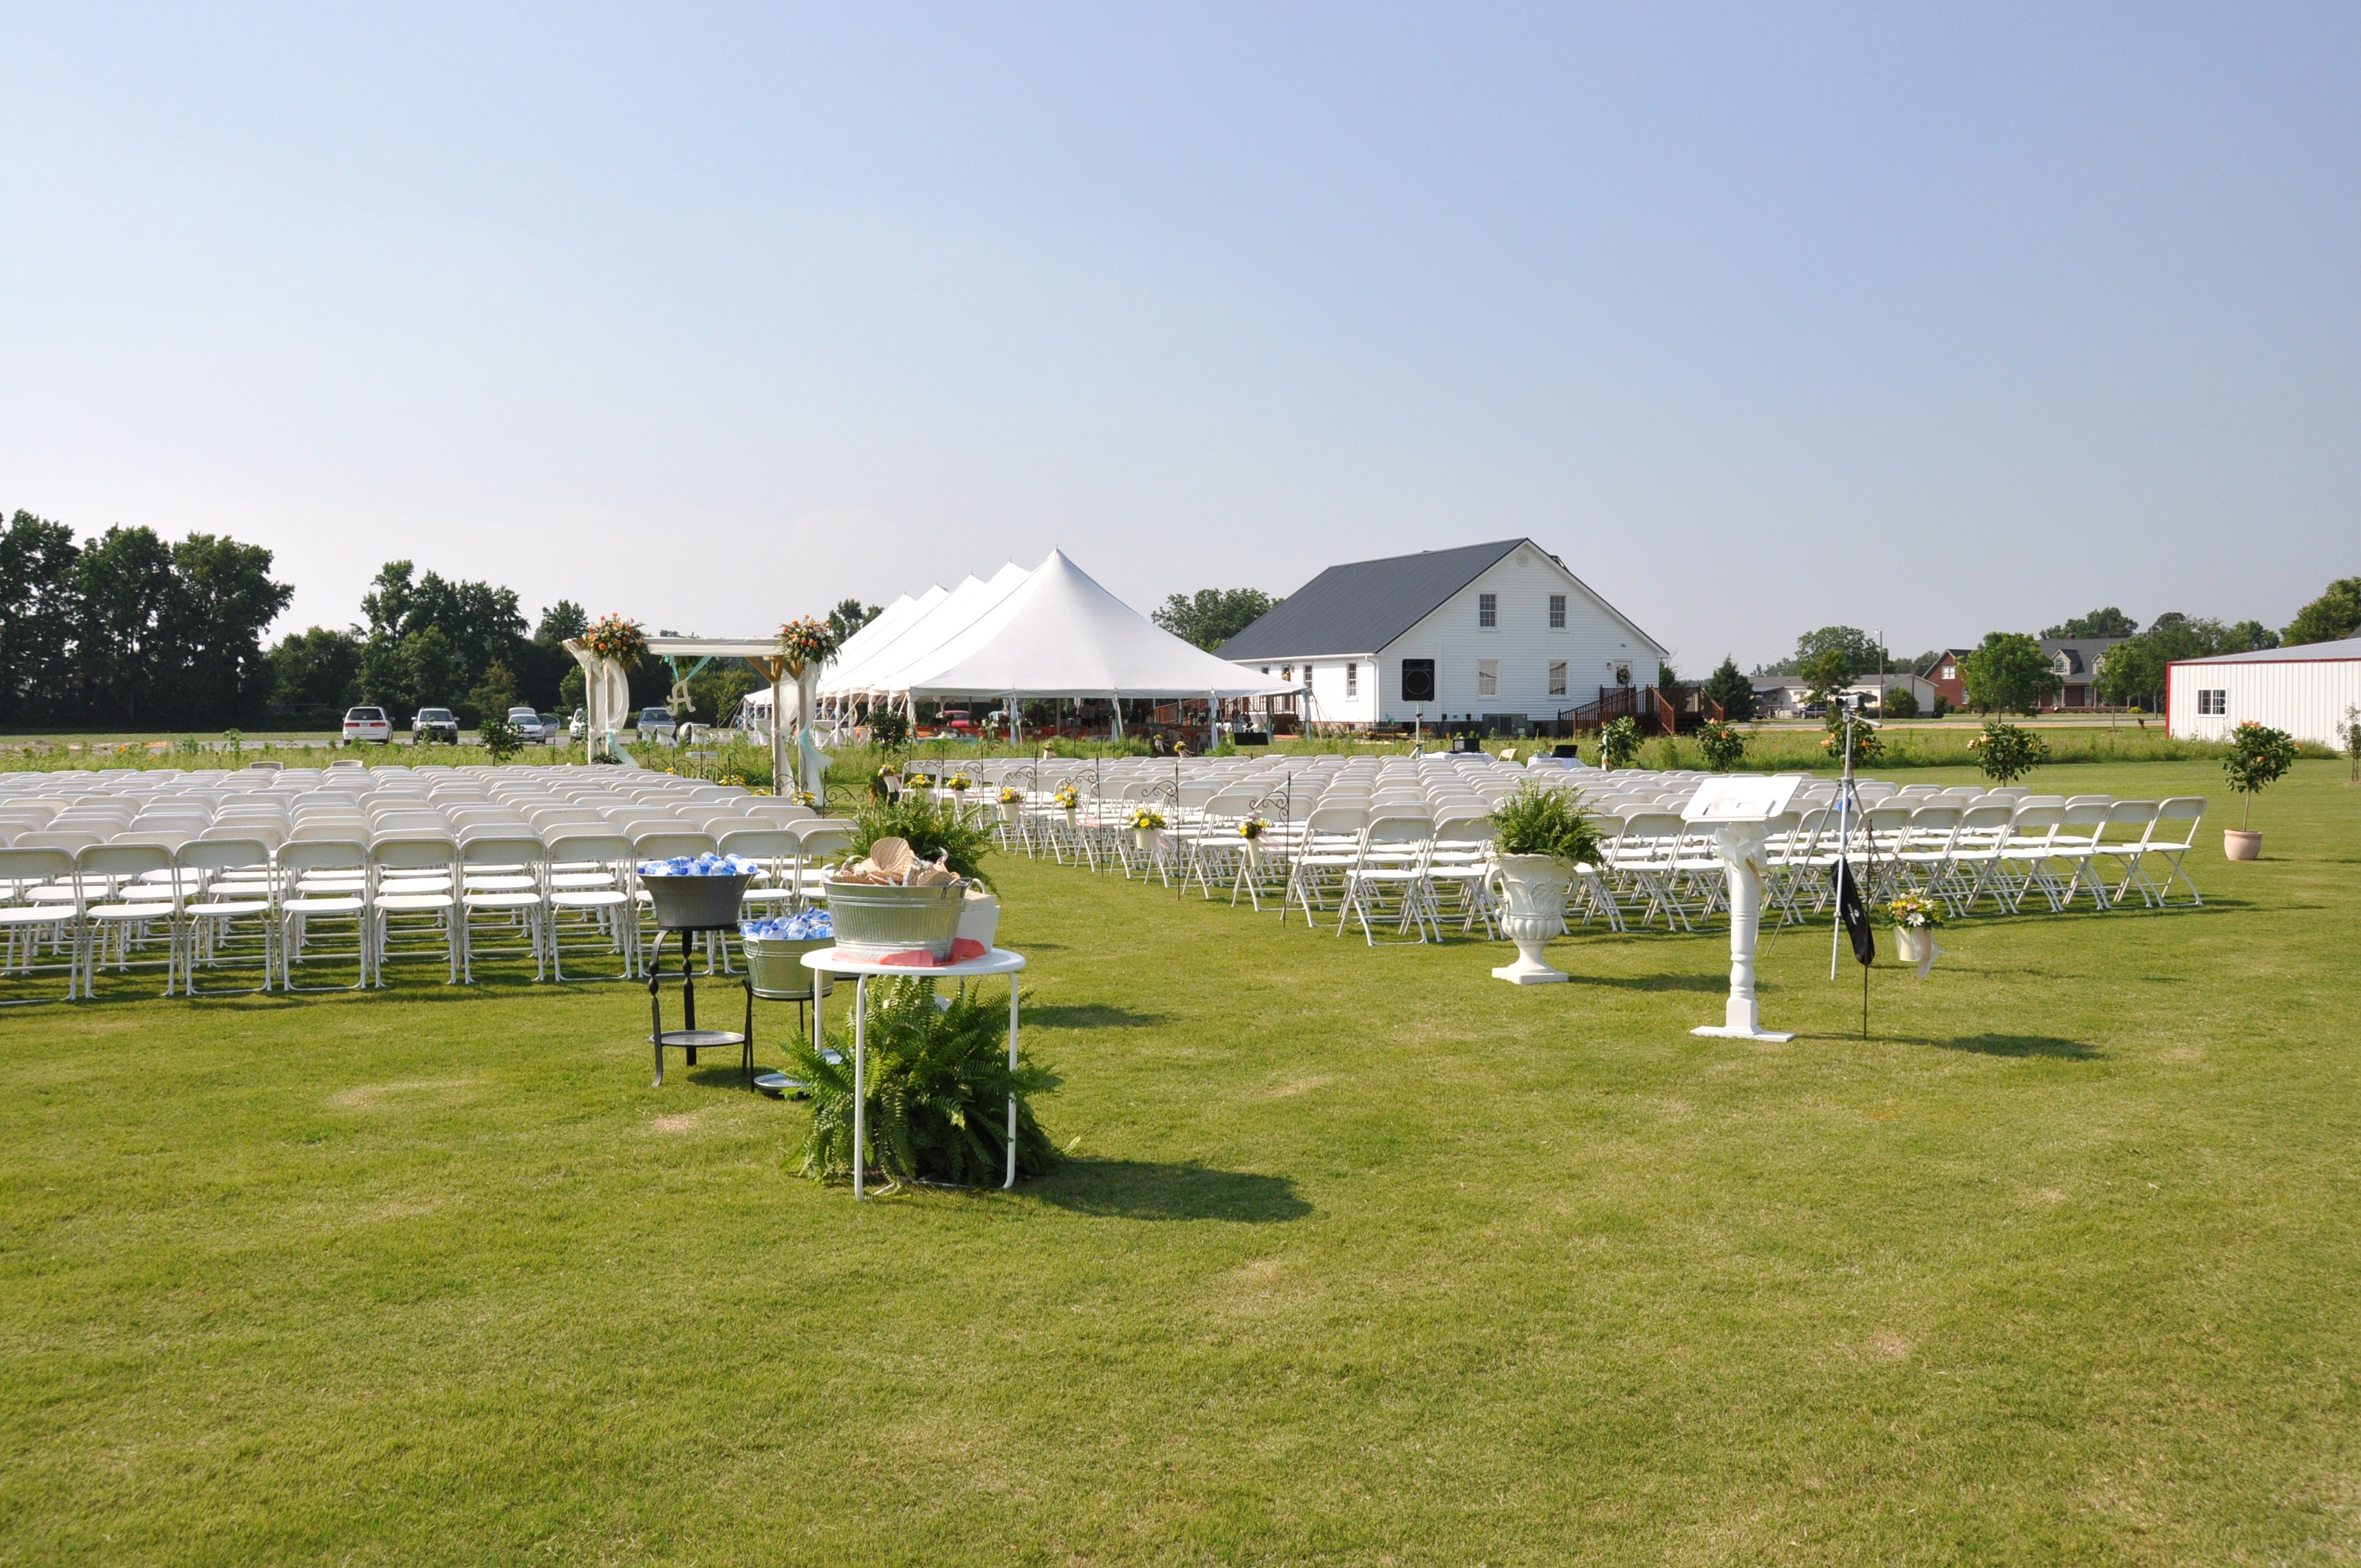 Hamstead Acres is an event venue located in LaGrange in Eastern North Carolina